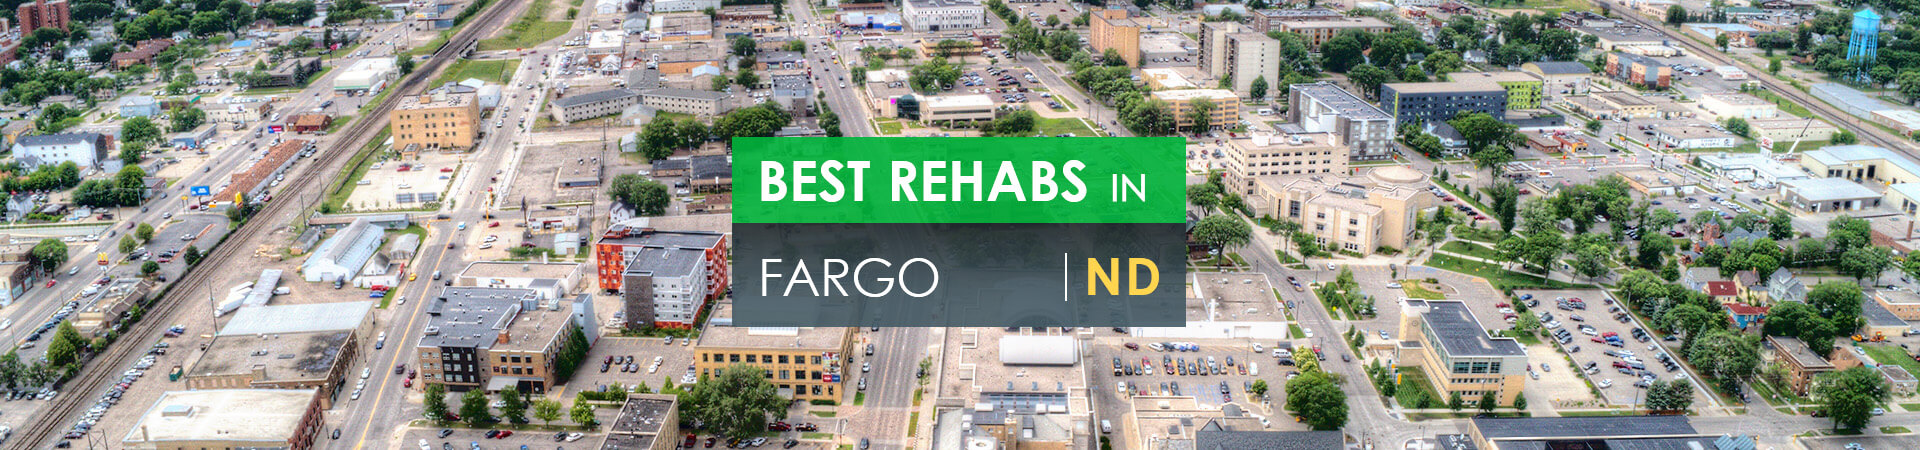 Best rehabs in Fargo, ND